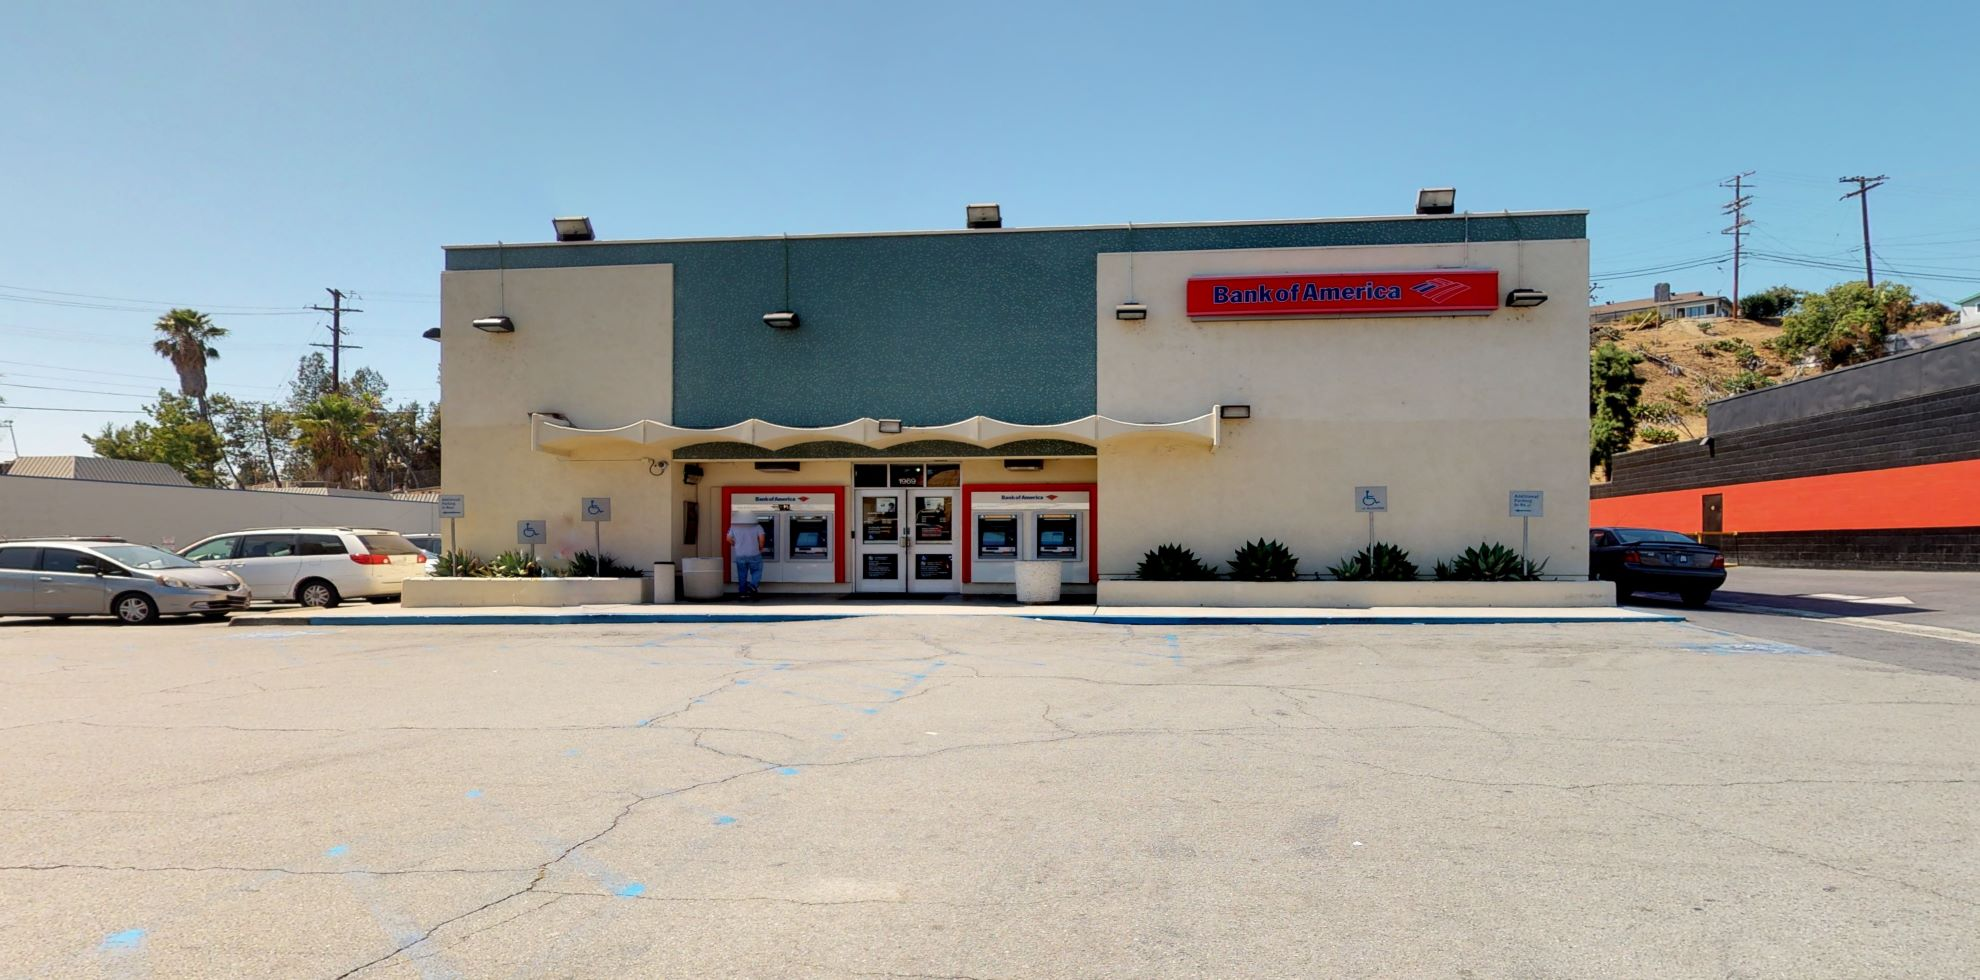 Bank of America financial center with walk-up ATM | 1969 S Atlantic Blvd, Monterey Park, CA 91754